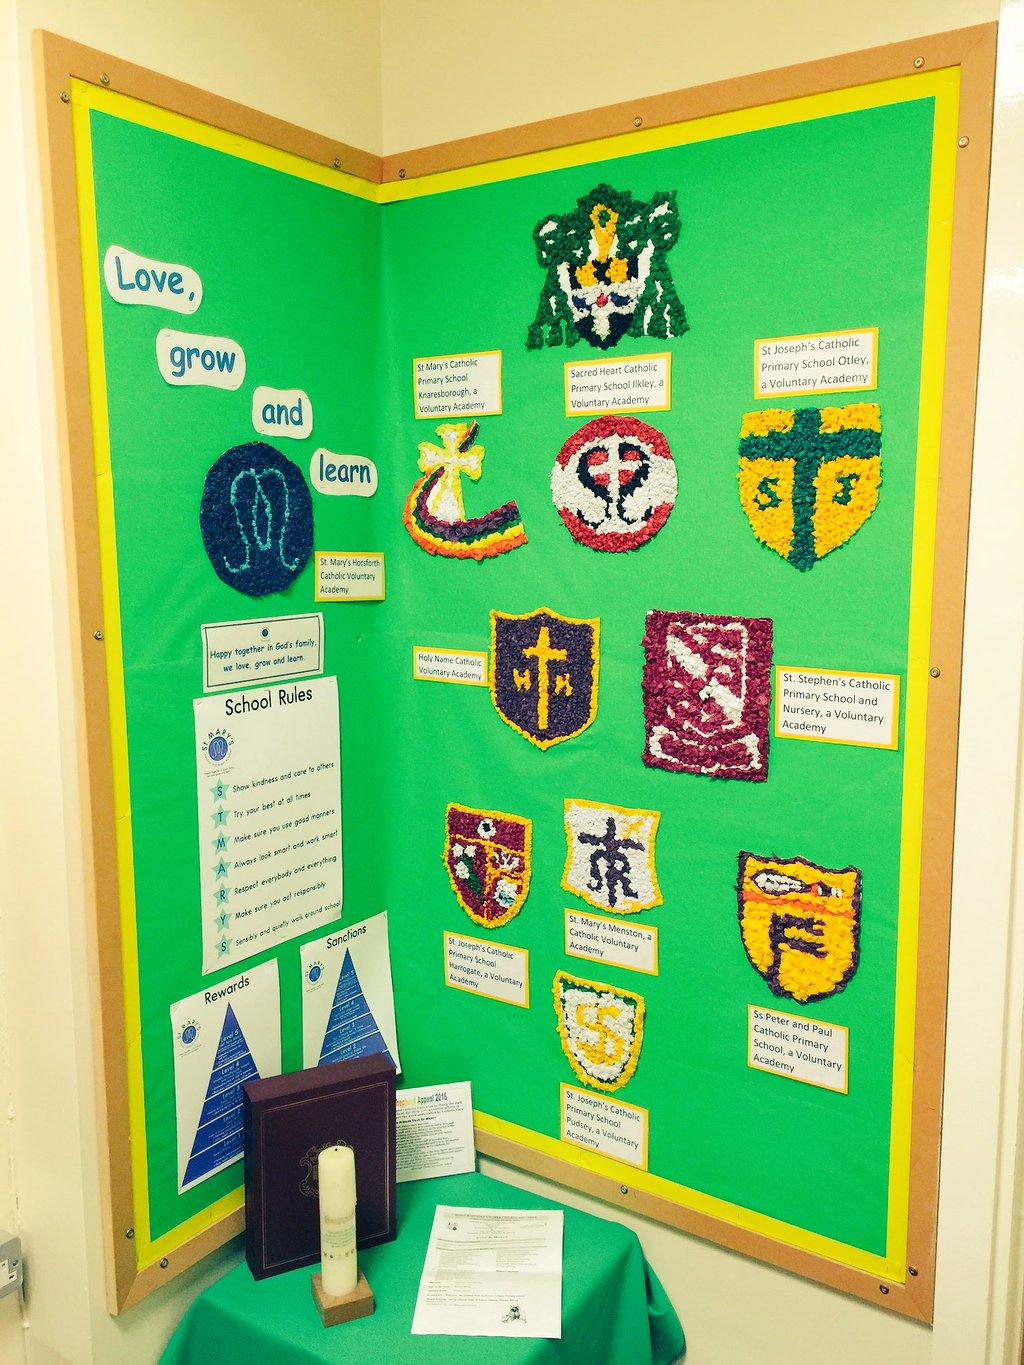 Photo: Each school's badge has been skillfully recreated in a medium which required simplifying the elements of each badge.